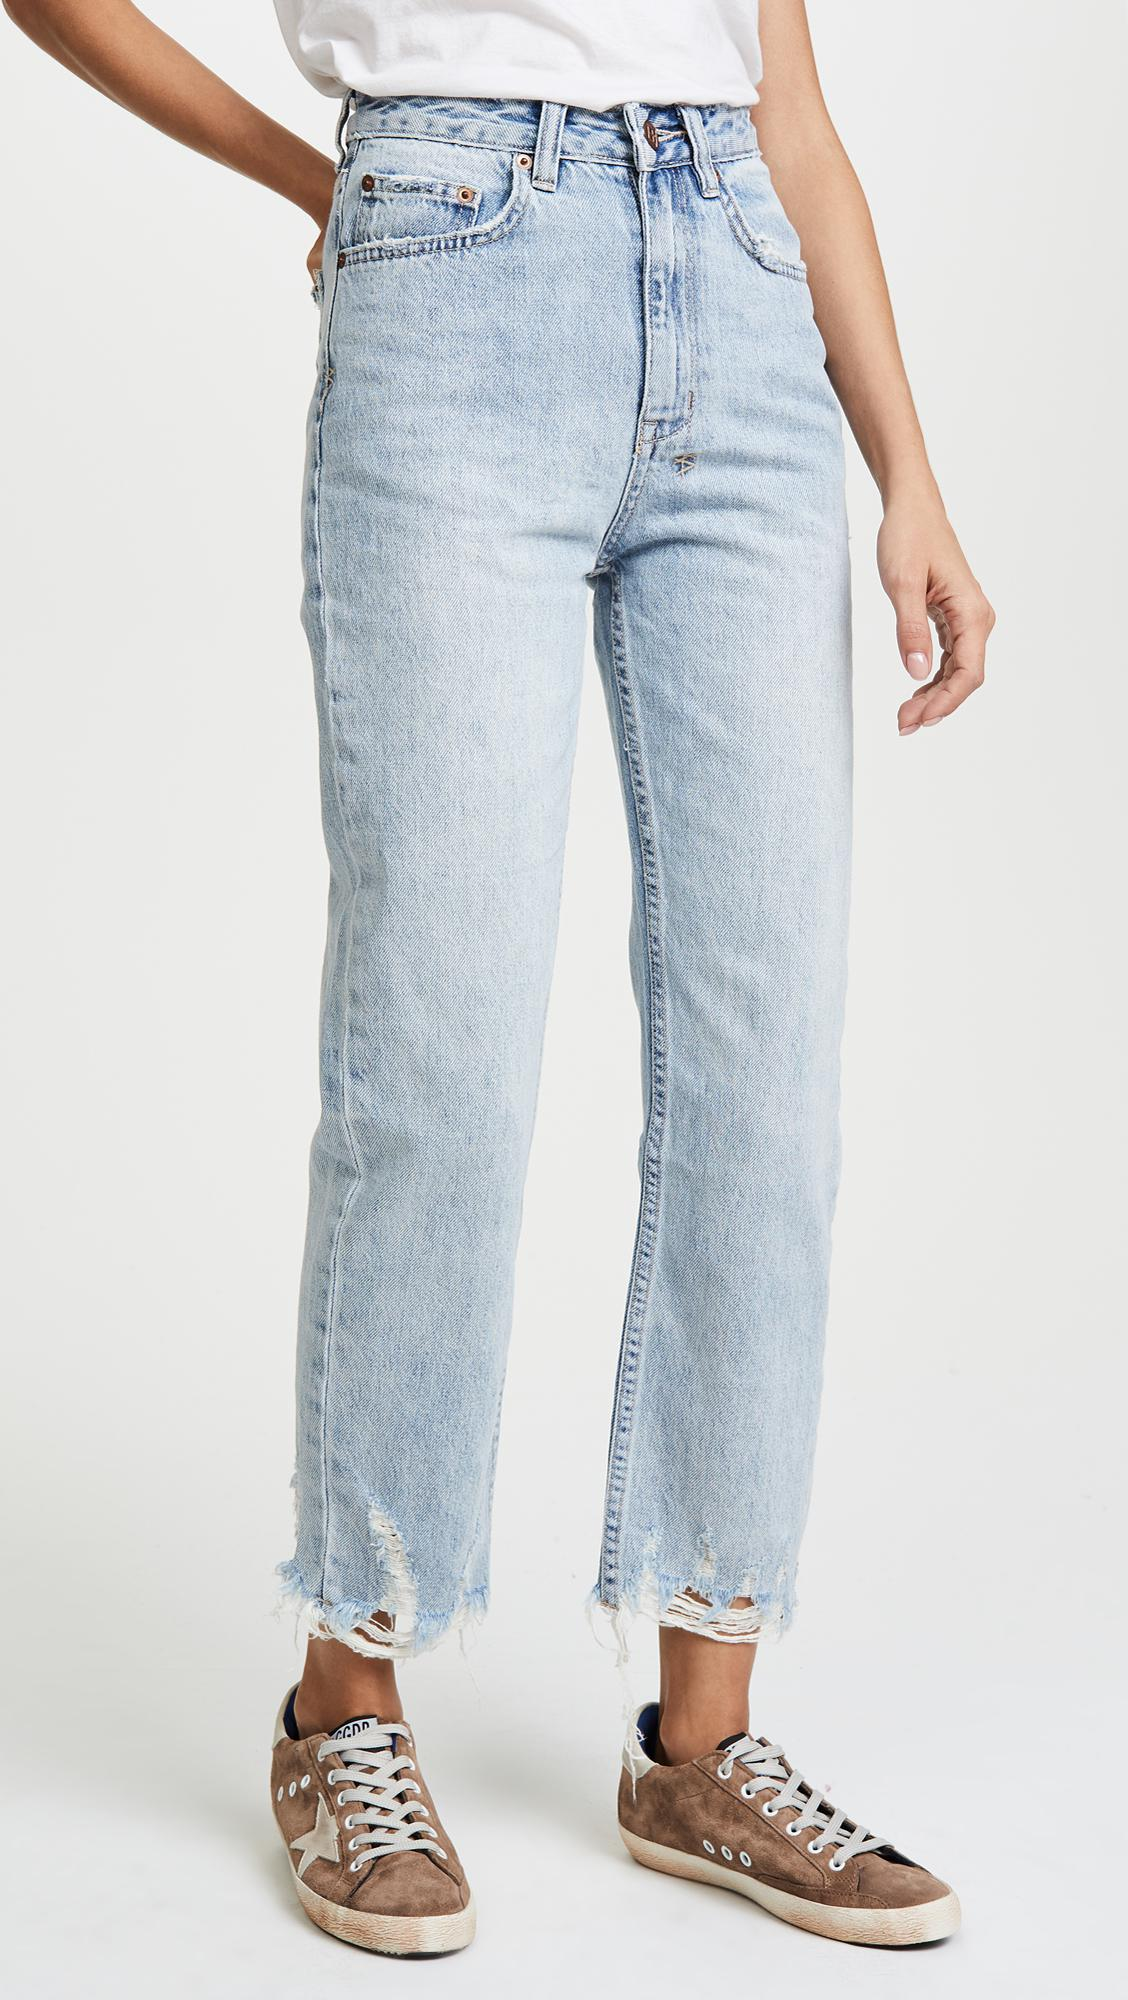 super freak distressed jeans Ksubi KUpvbKfj